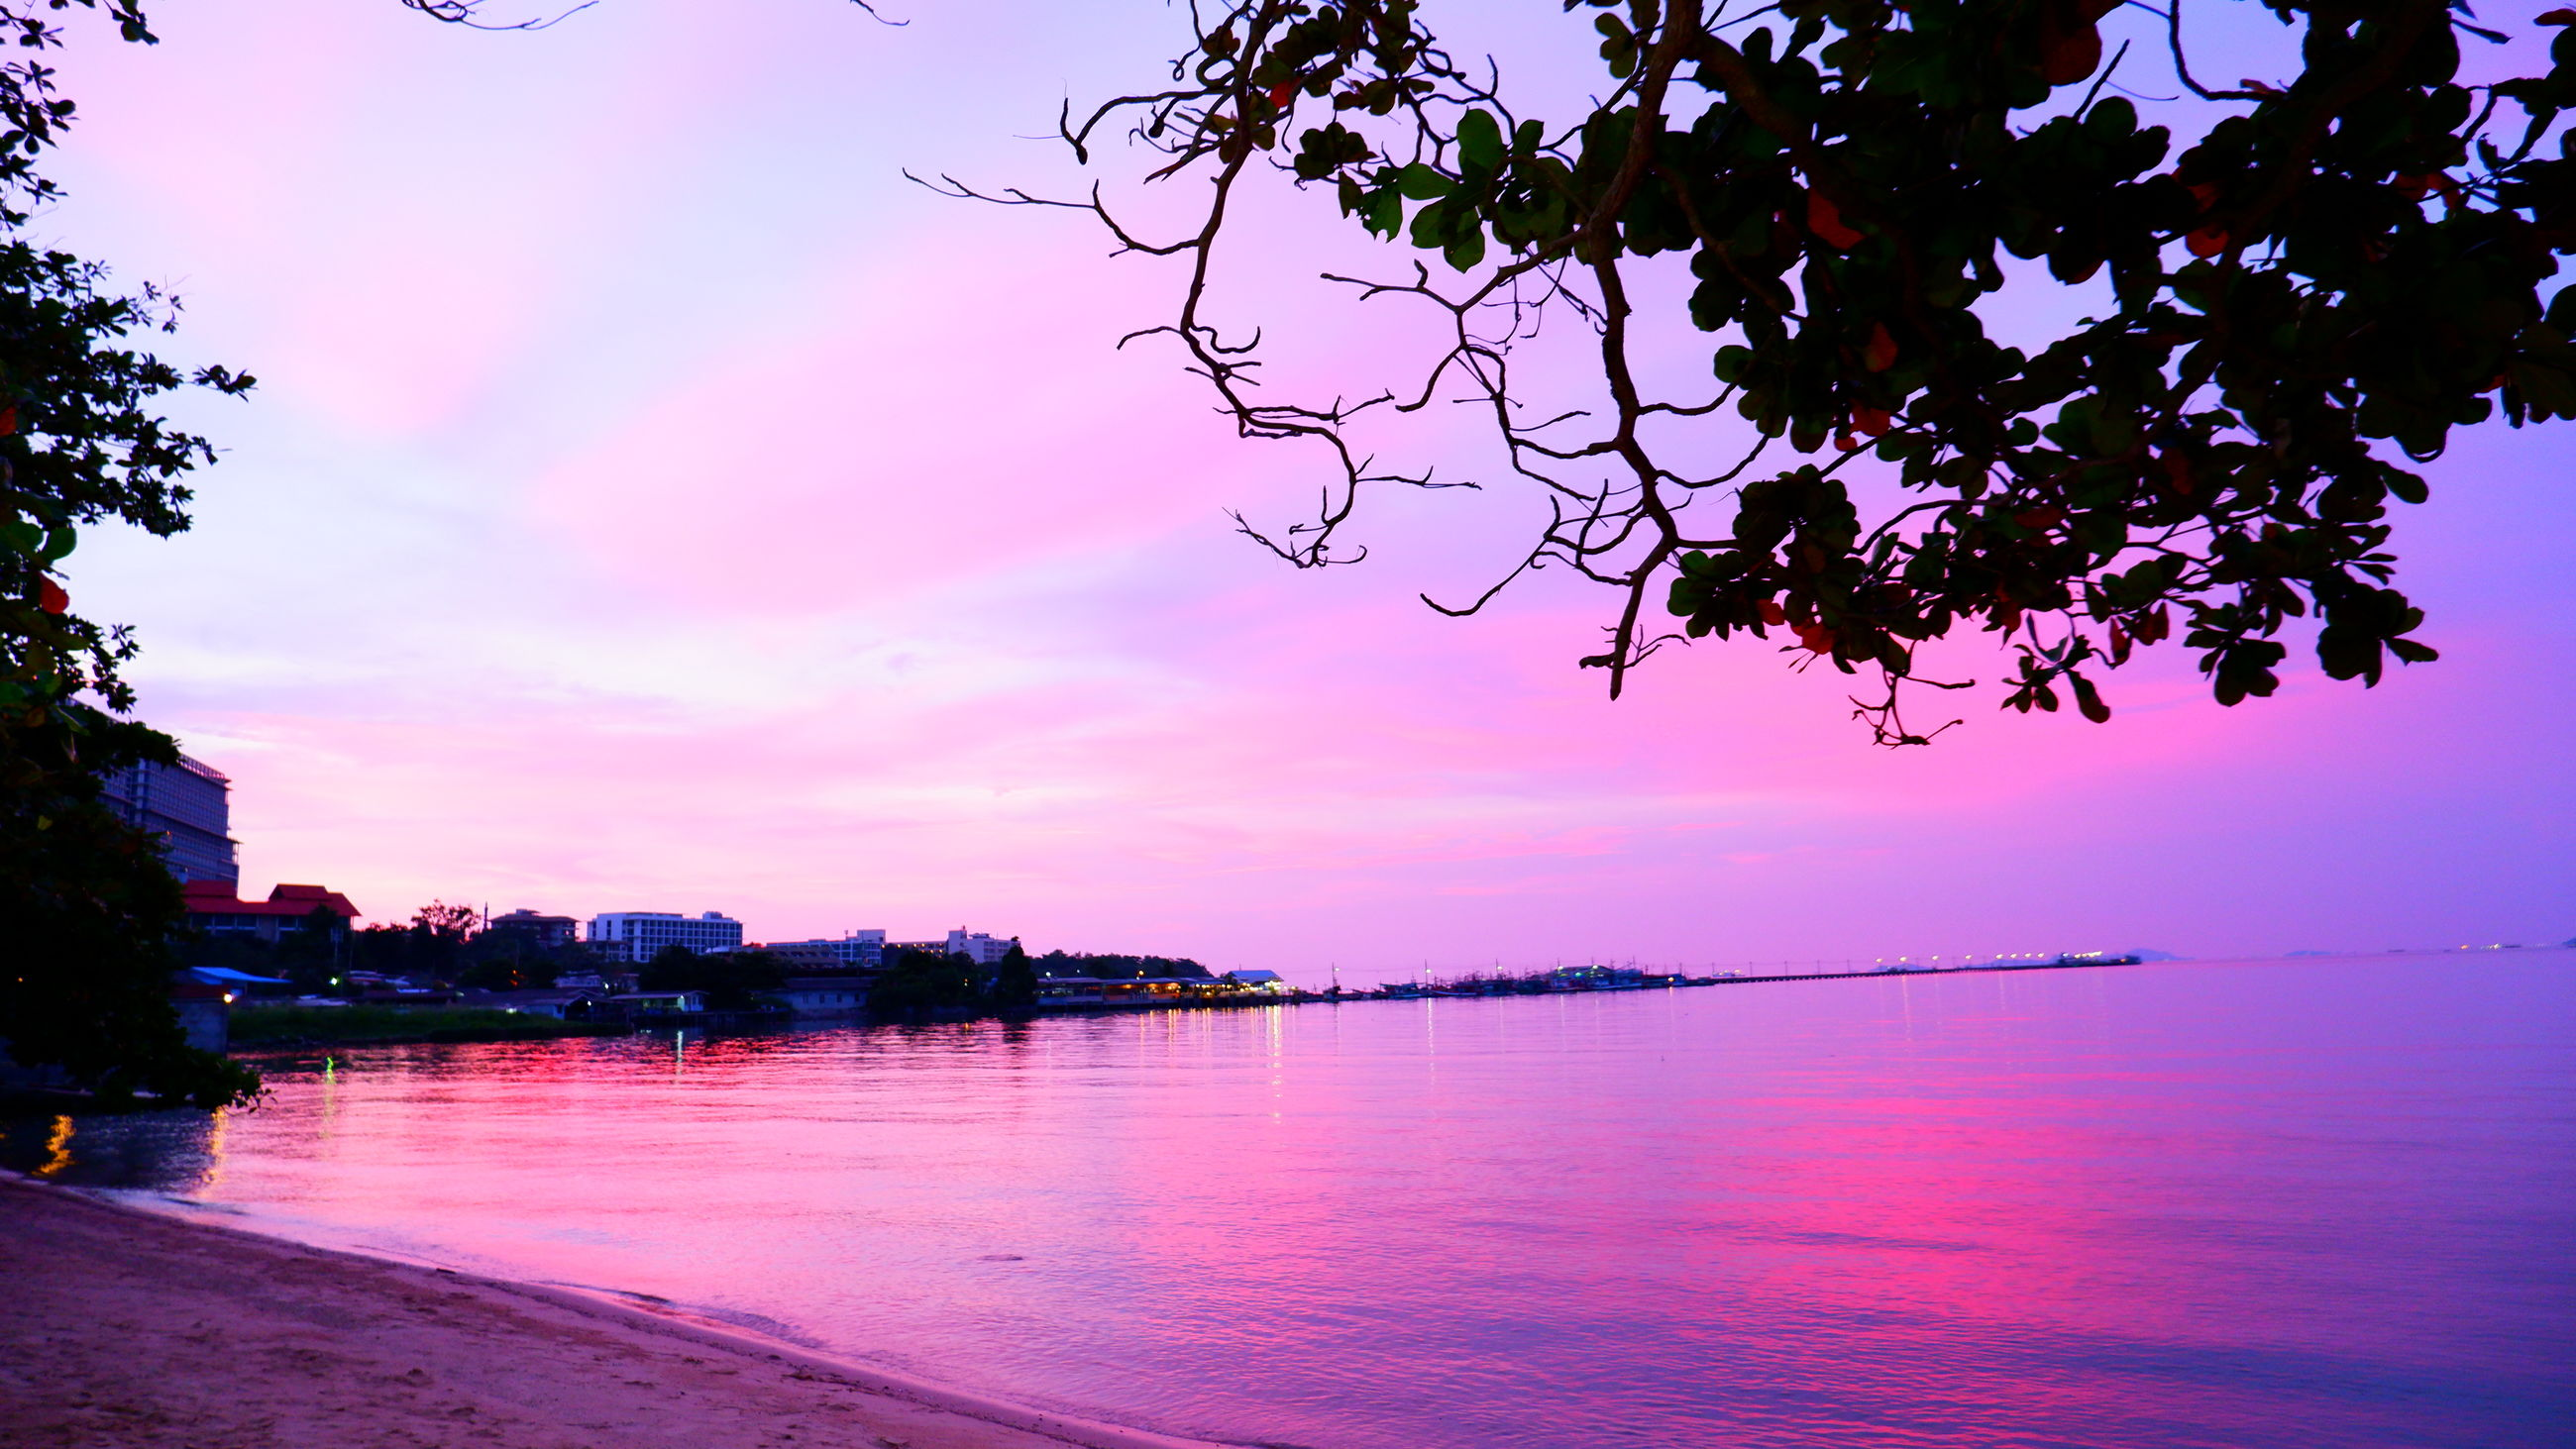 water, sky, tree, beauty in nature, nature, plant, scenics - nature, tranquility, sunset, cloud, sea, dusk, evening, reflection, pink, tranquil scene, no people, beach, outdoors, silhouette, travel destinations, land, landscape, idyllic, environment, travel, multi colored, architecture